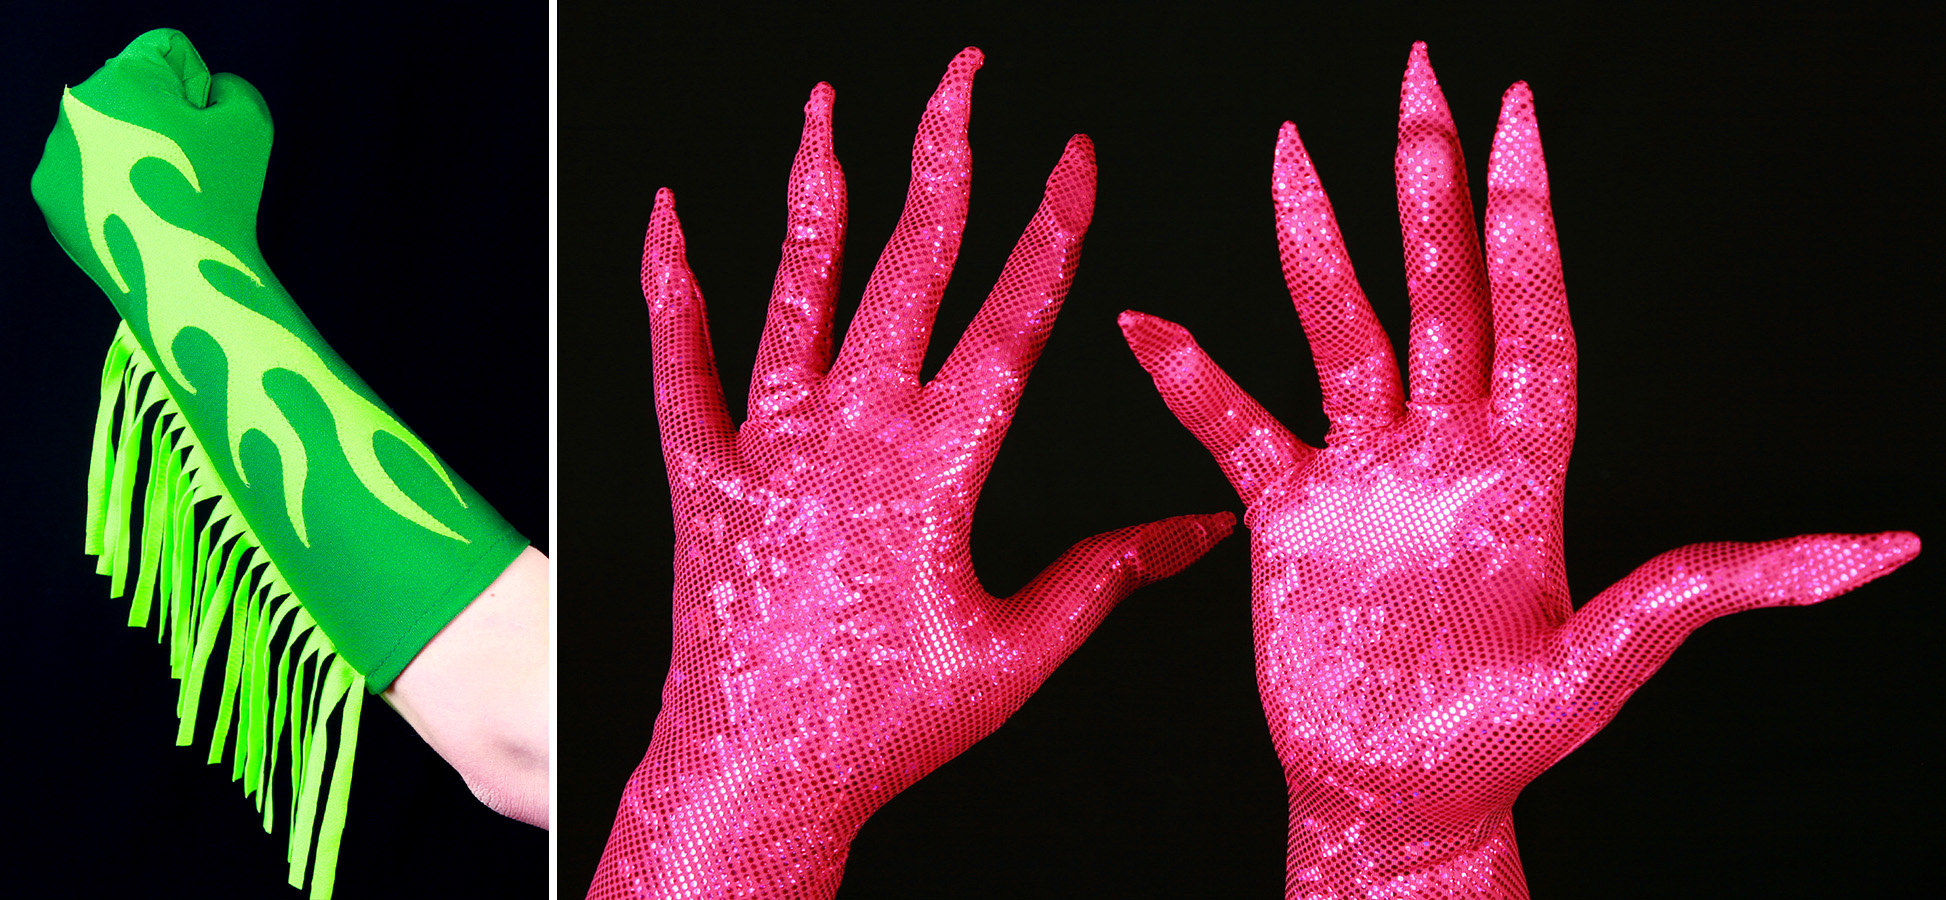 2 photos of gloves - one is a bright green glove with neon yellow flames on top - and neon yellow fringe up the side.  The second is a pair of fuchsia hologram gloves with built in nails.